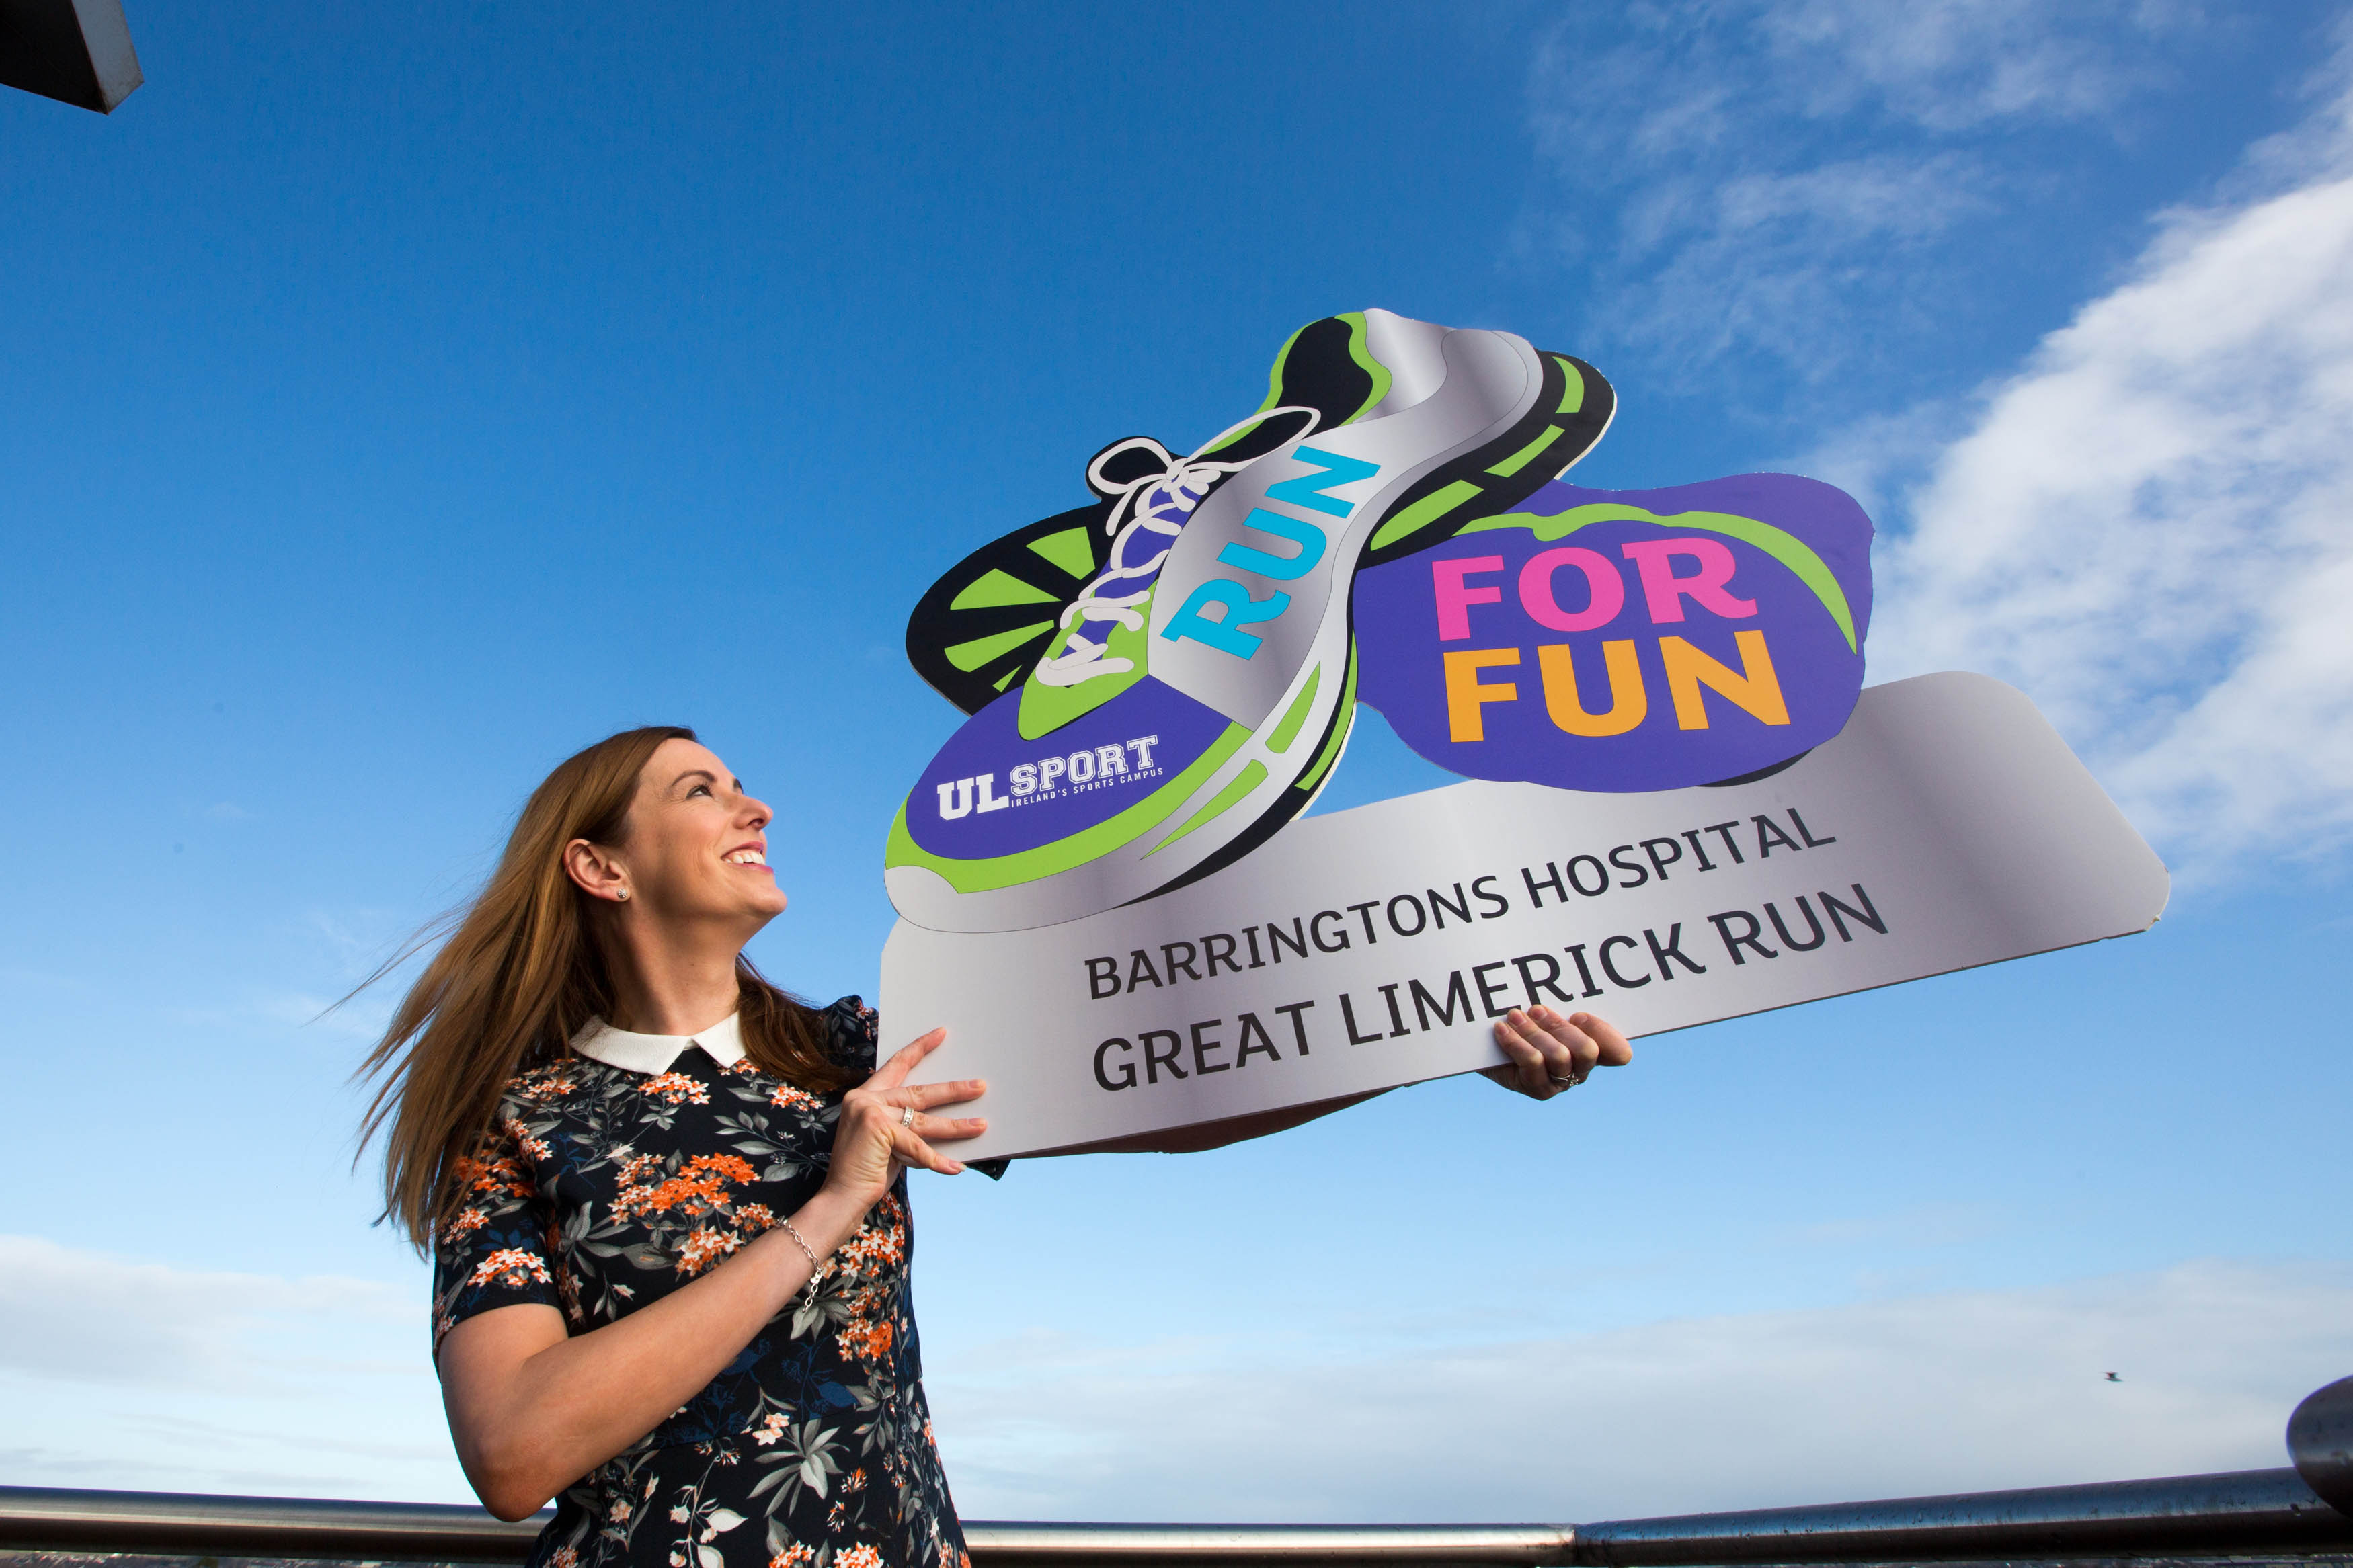 7th Annual Barringtons Hospital Great Limerick Run